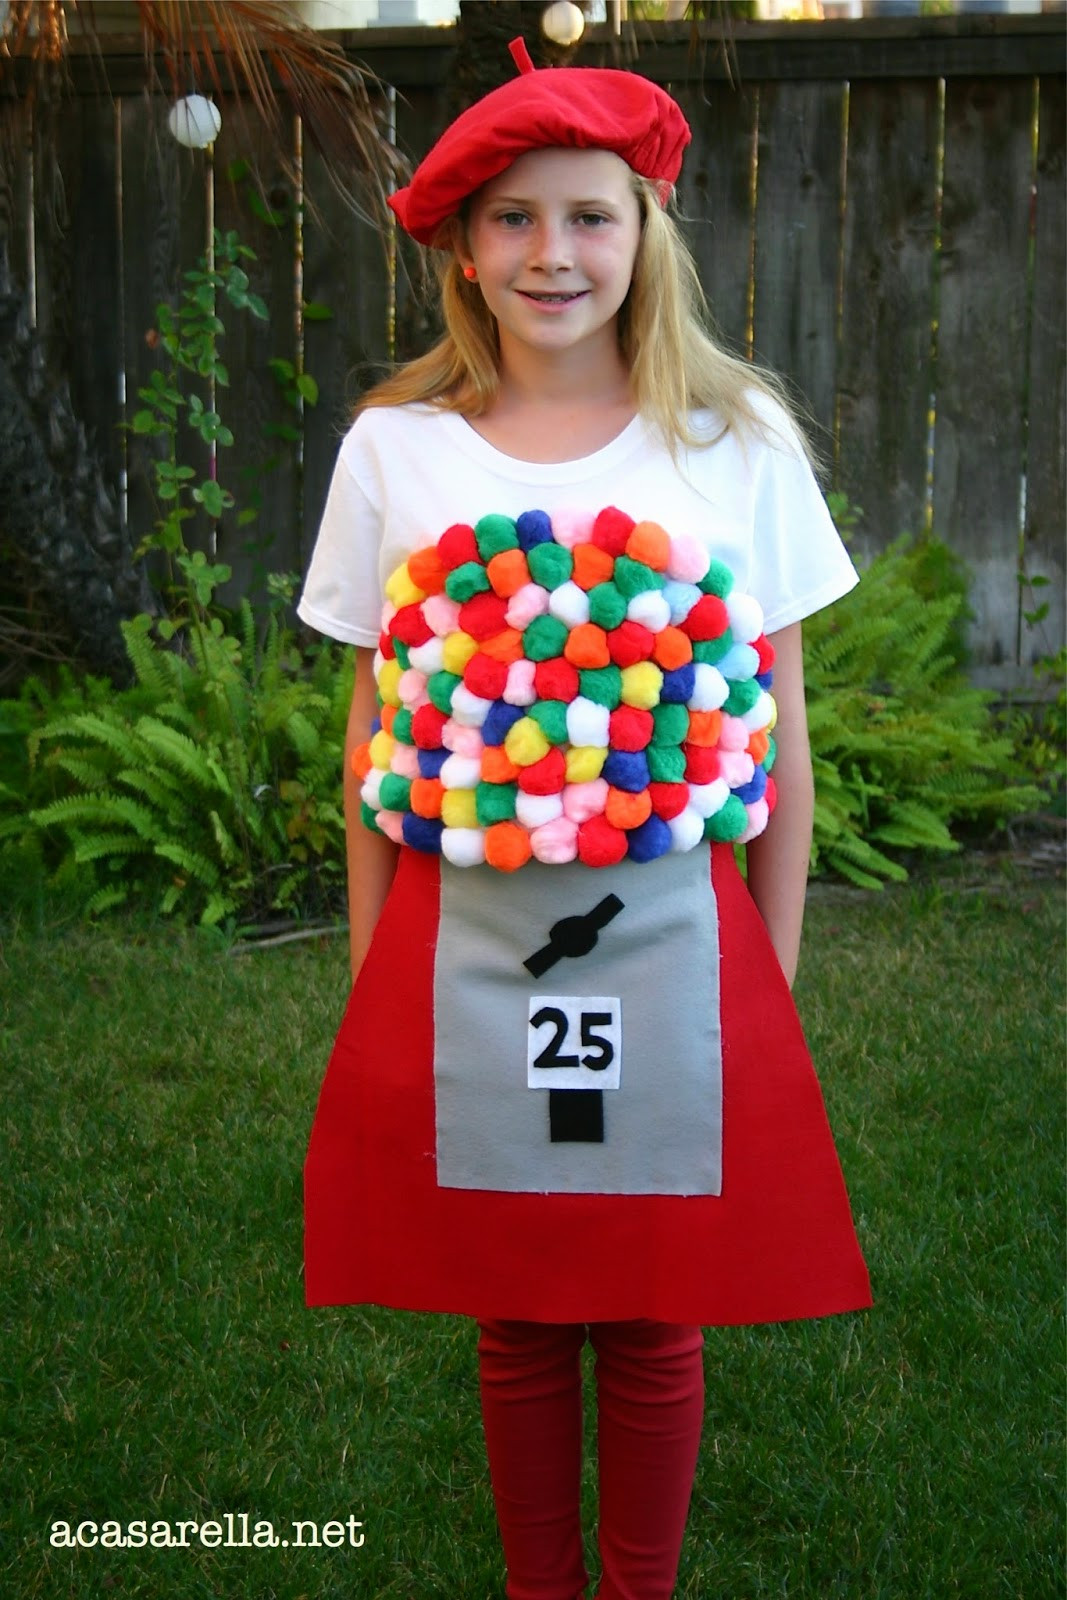 Best ideas about DIY Cute Costume . Save or Pin 15 Amazing and Cute DIY Halloween Costumes Kids Edition Now.